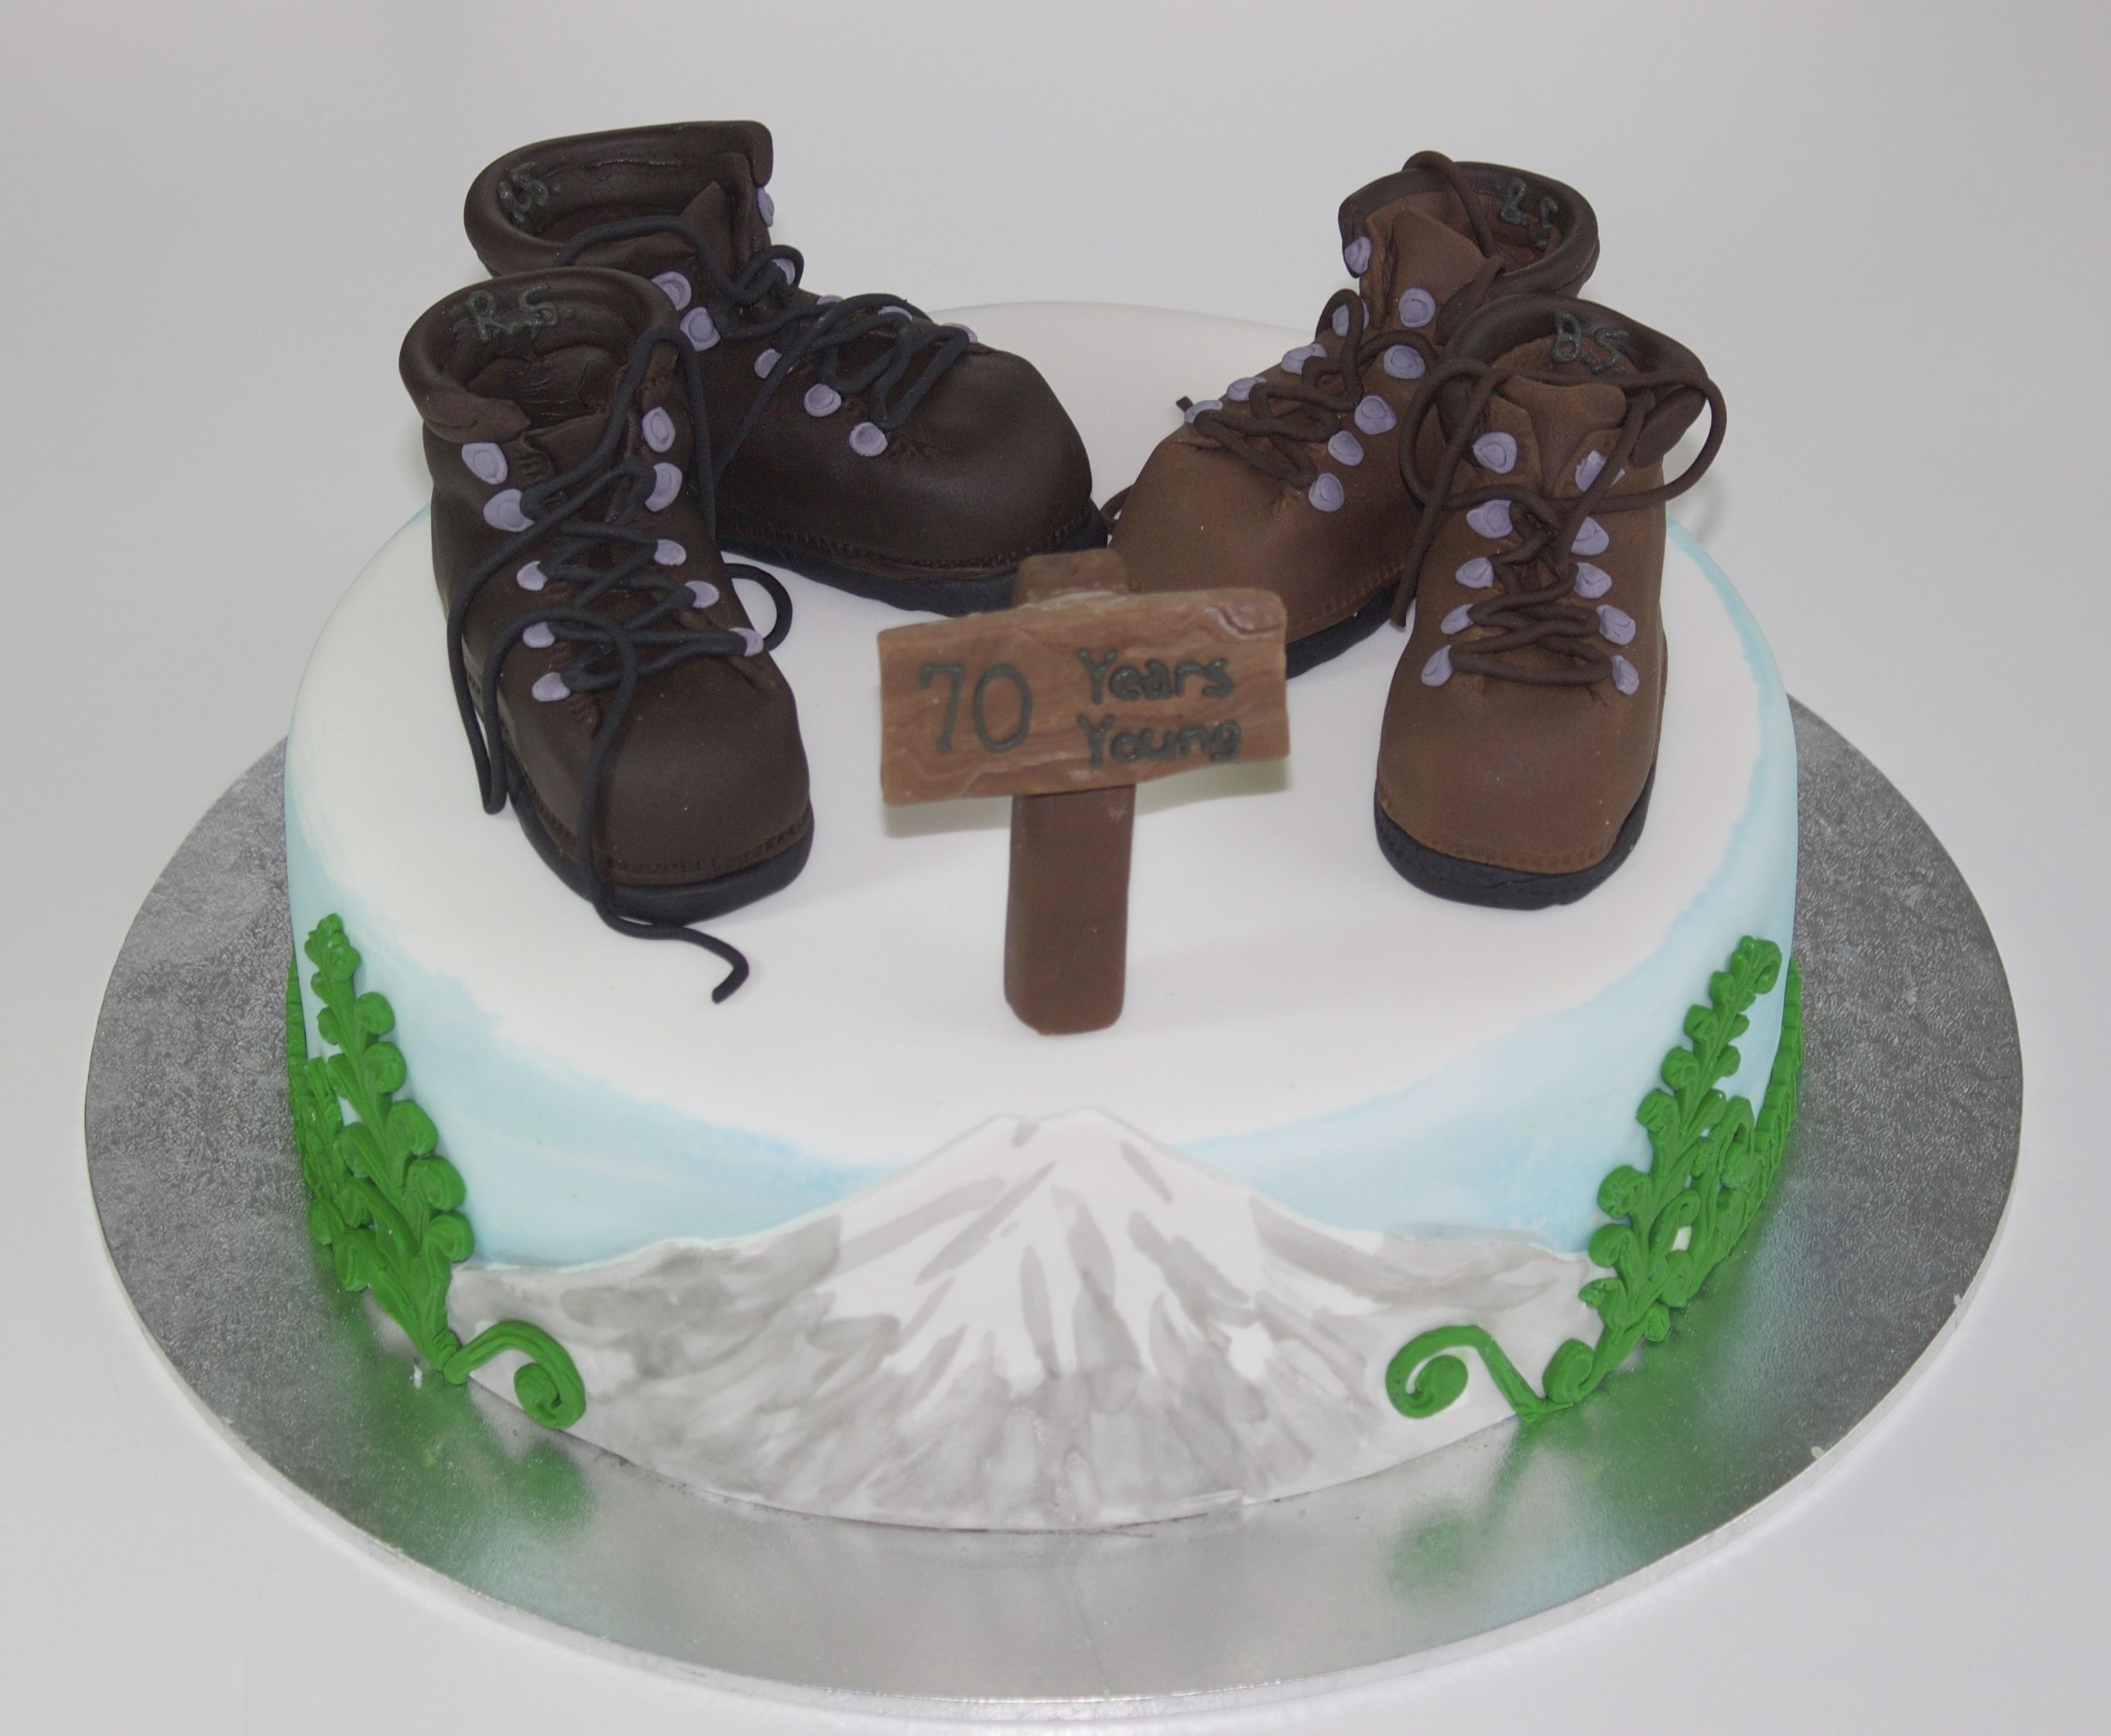 70th Birthday Cake | featuring Fondant Hiking or Tramping Boots ...